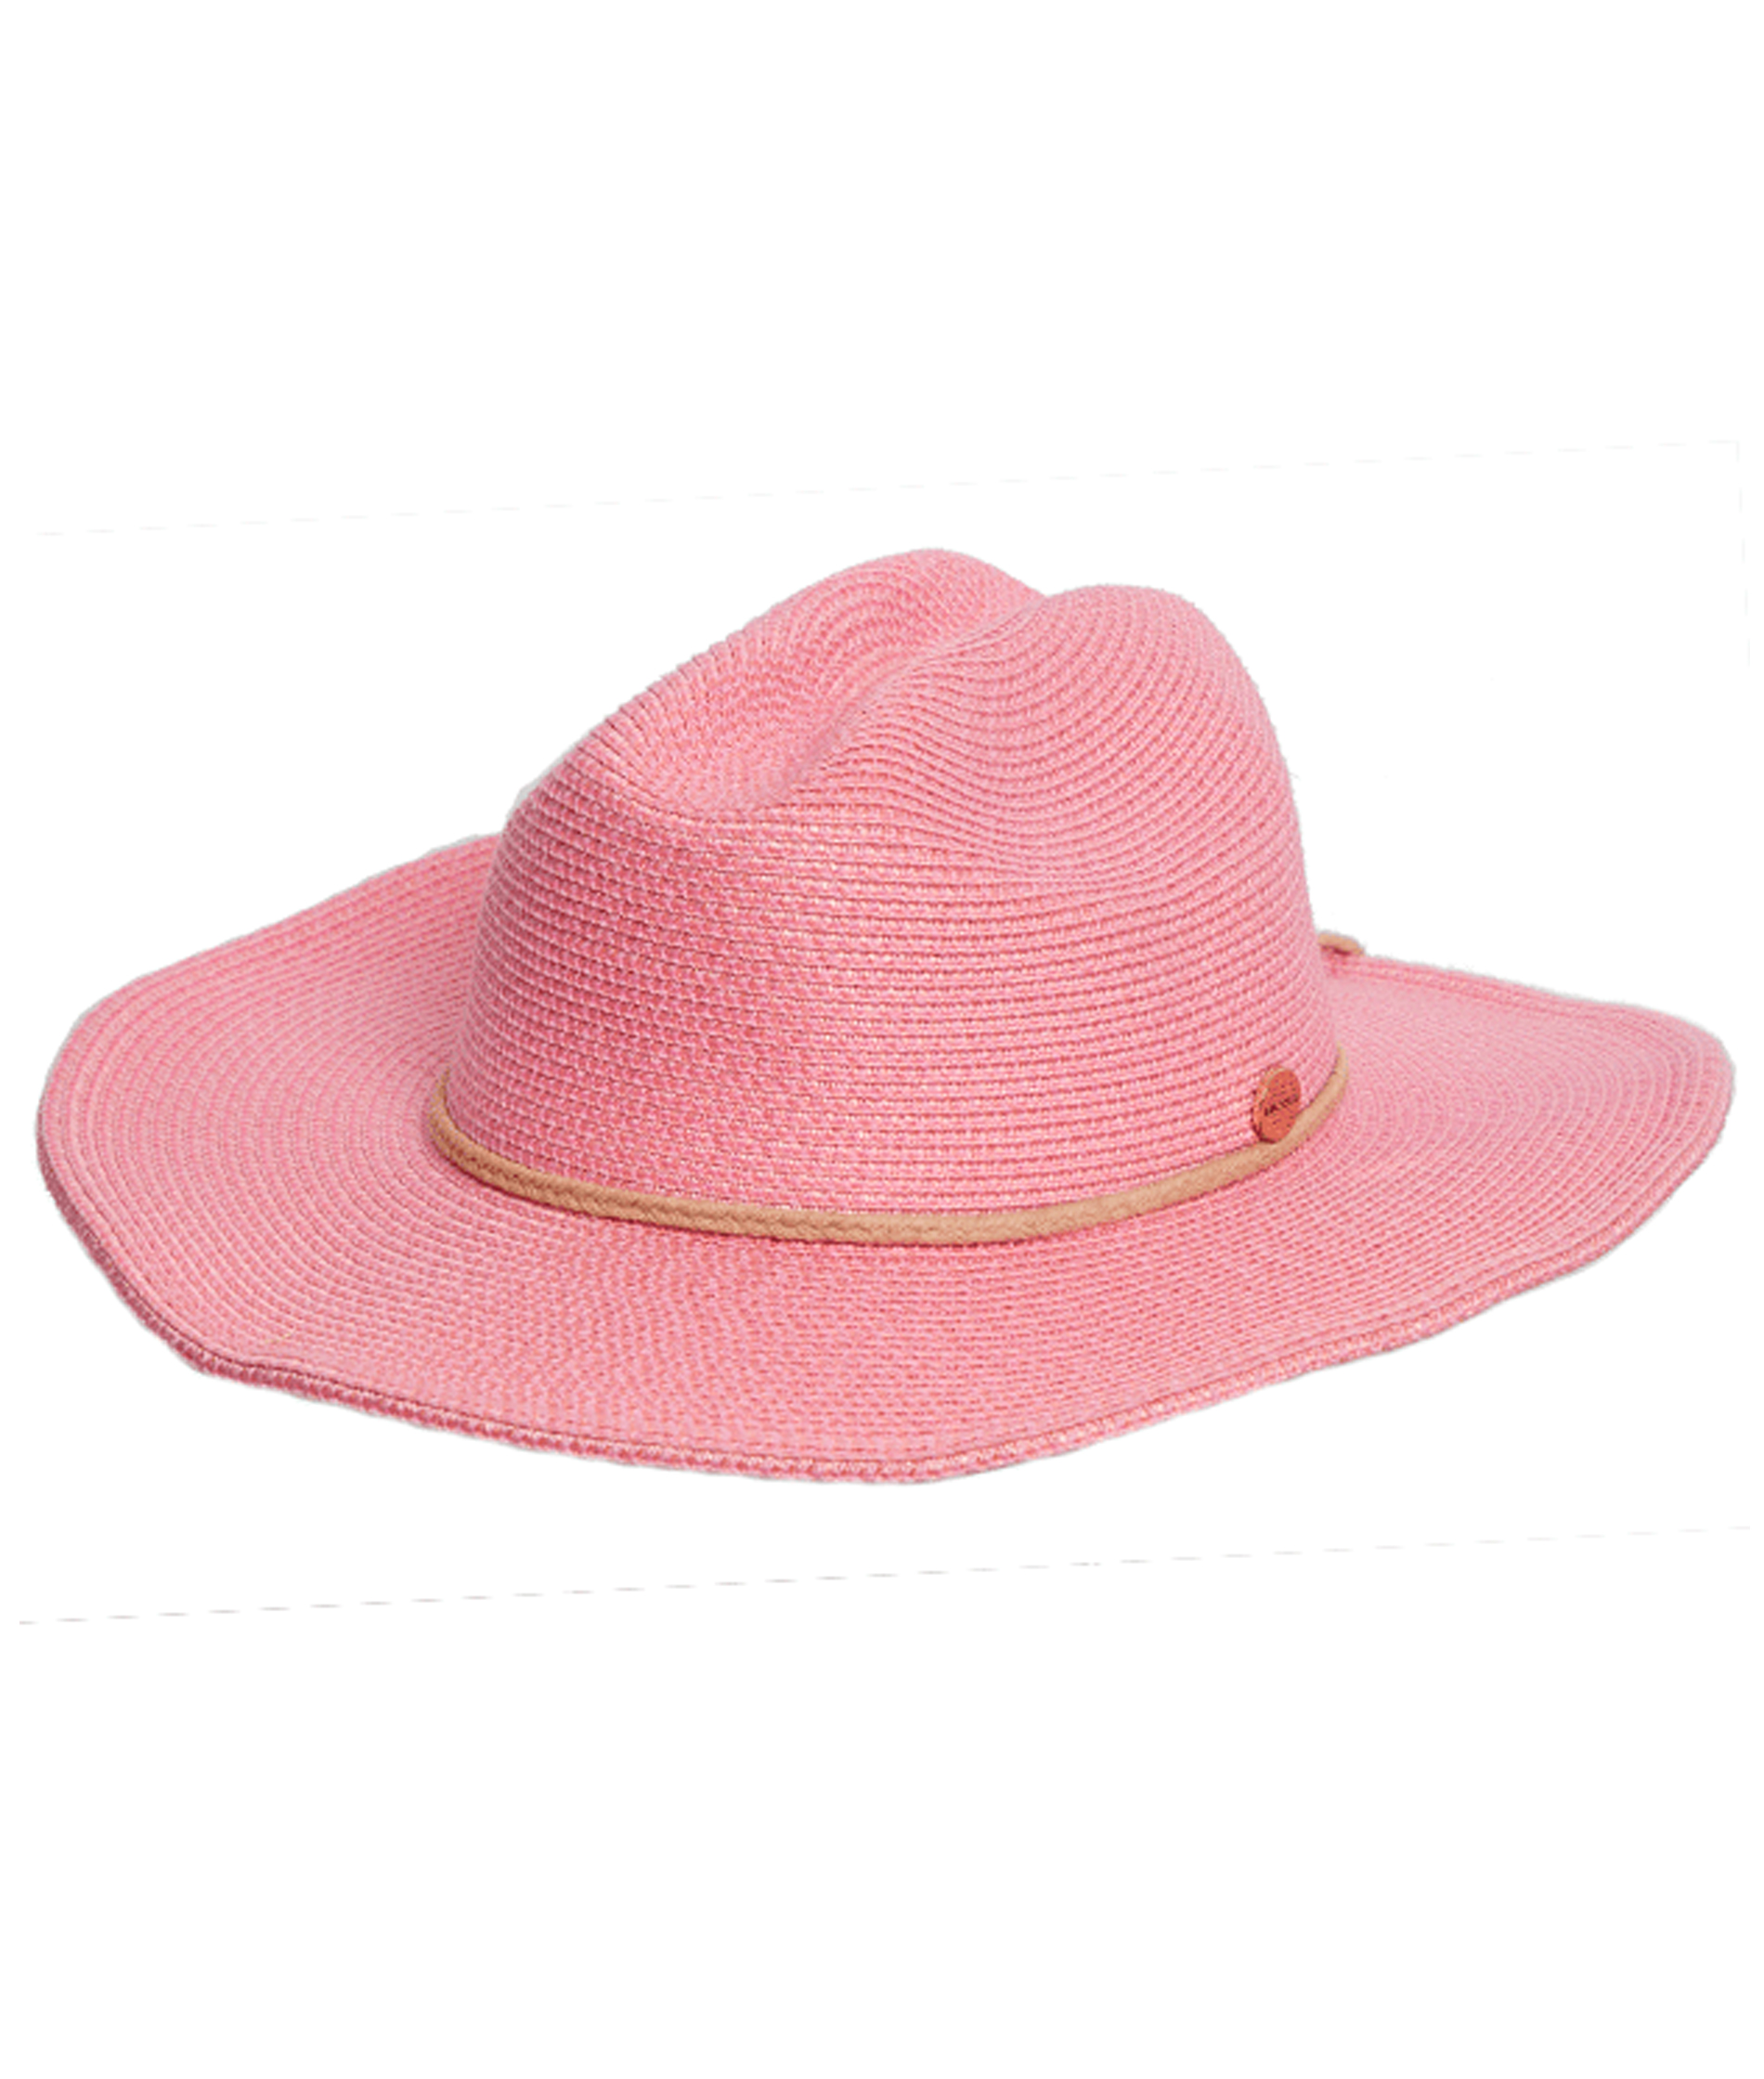 Seafolly Kids Shady Lady Mini Packable Coyote Hat - Pink